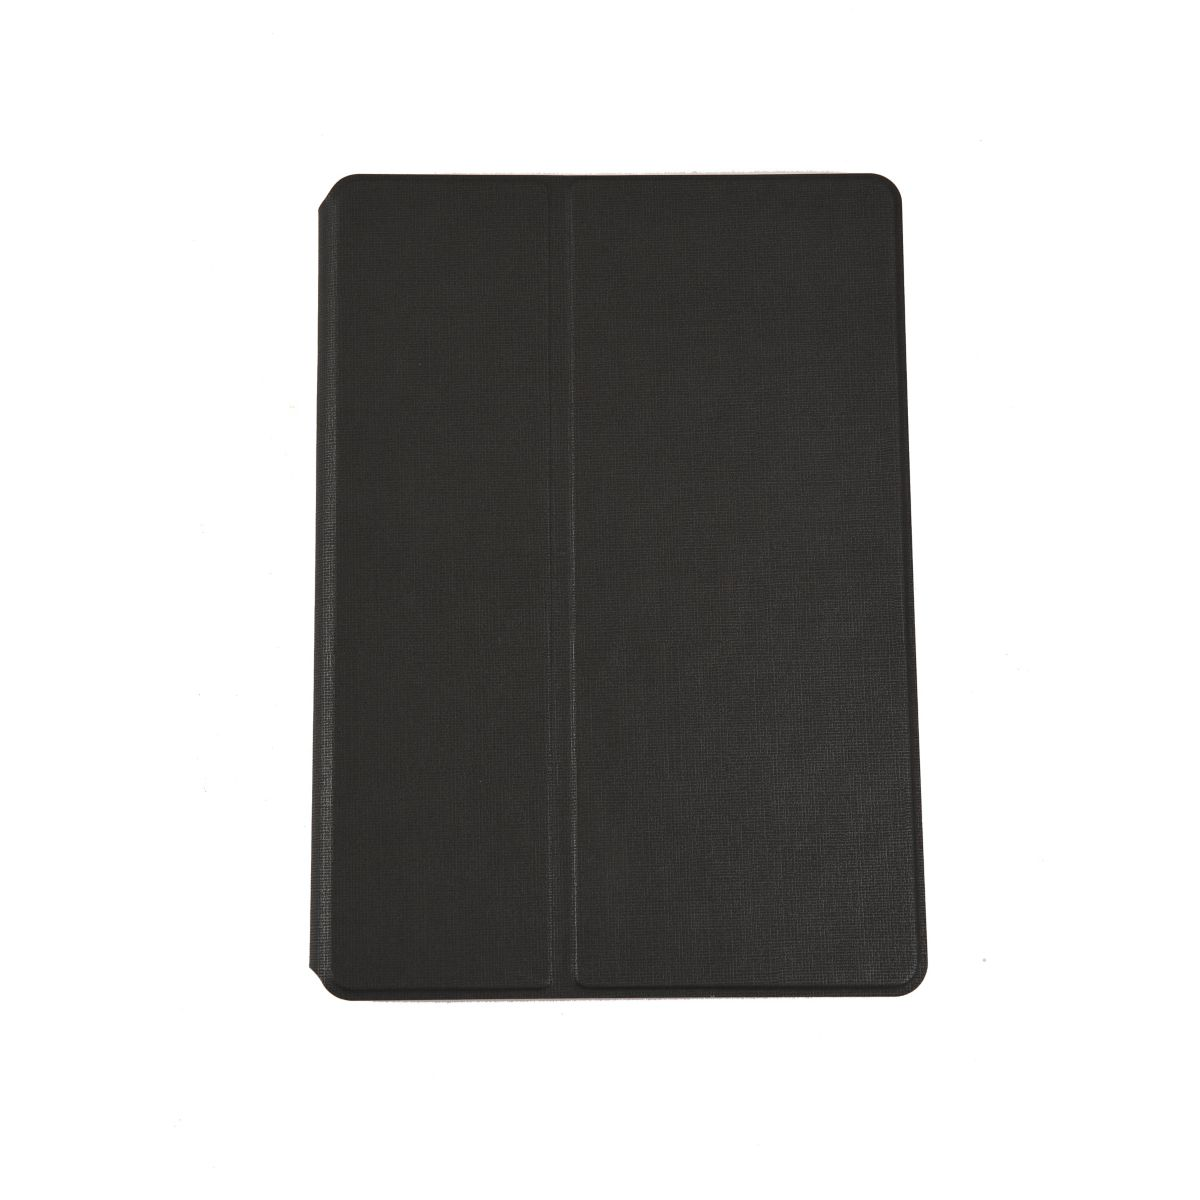 Etui ESSENTIELB iPad Air / Air 2 rotatif Noir (photo)